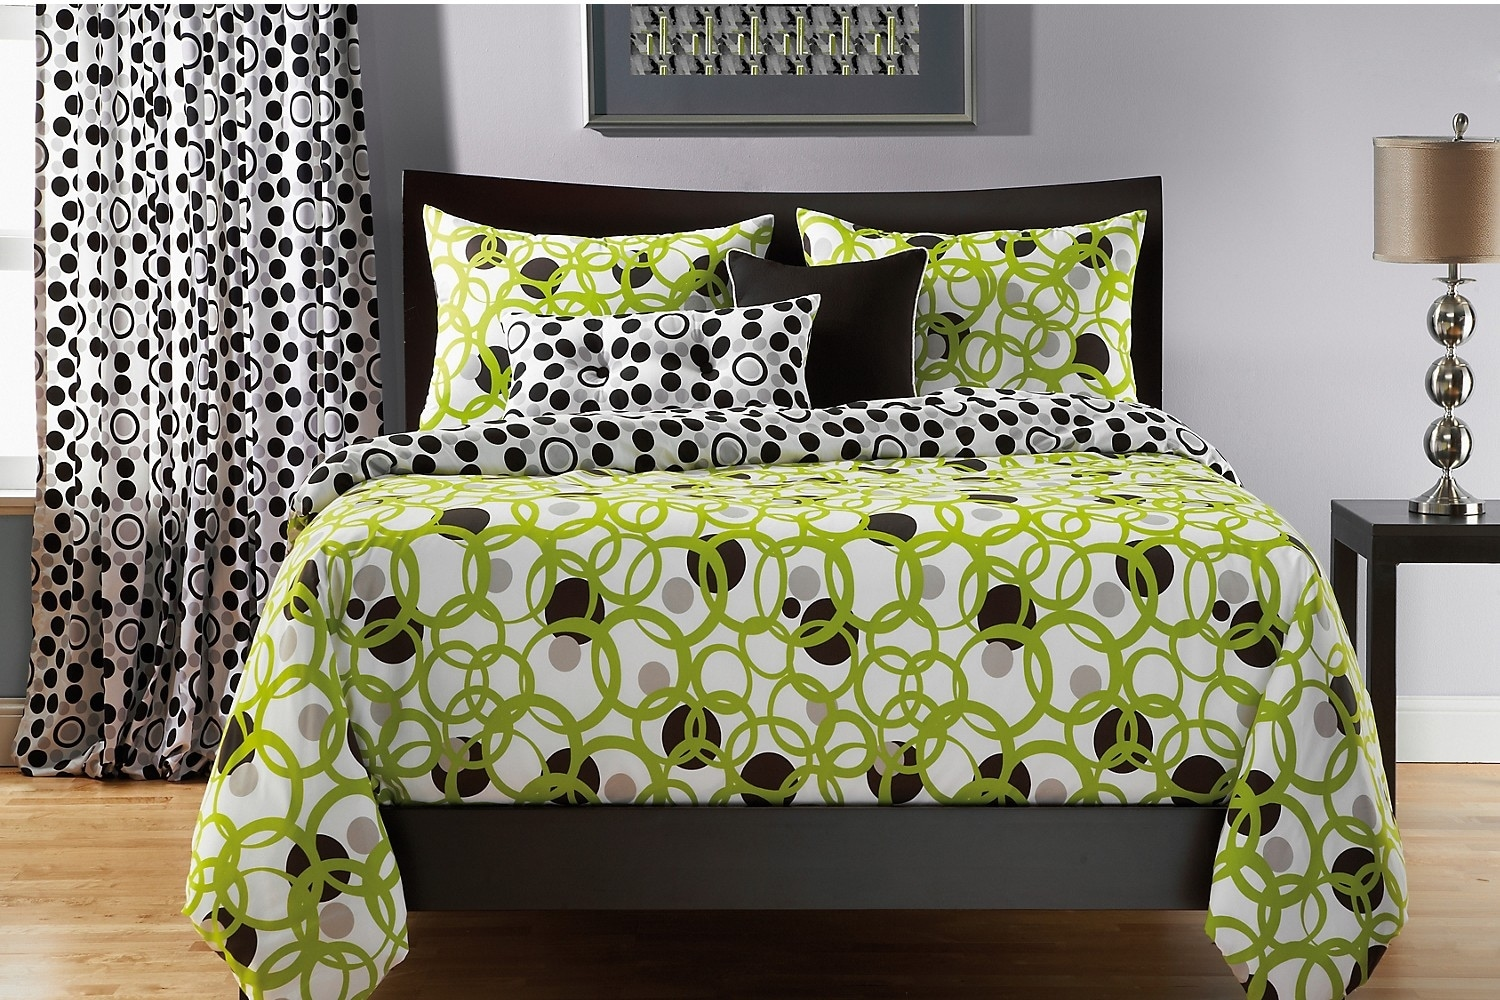 Mattresses and Bedding - Full Circle Green Reversible 3 Piece Twin Duvet Cover Set